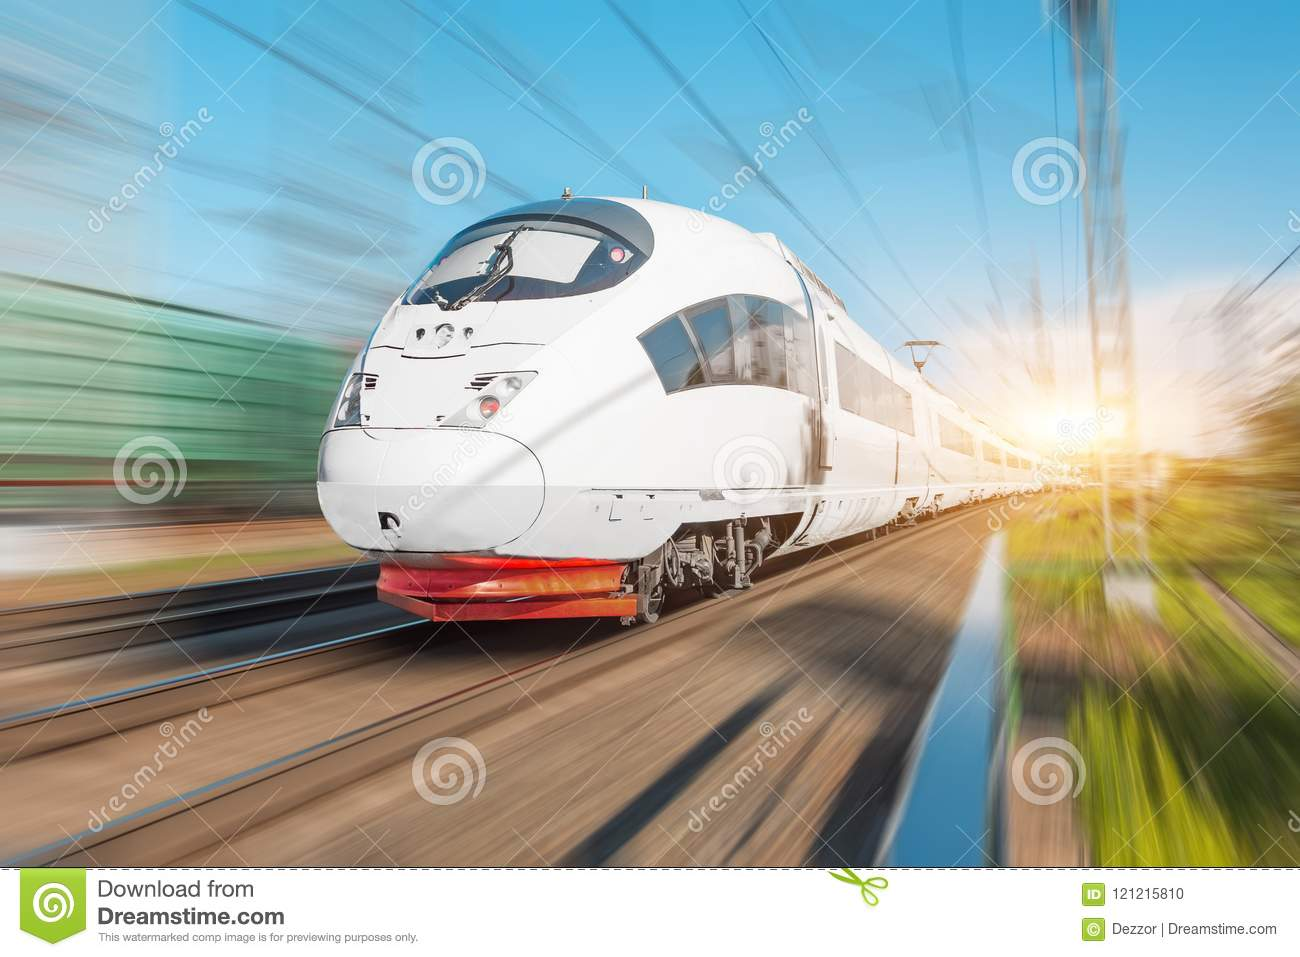 High speed electric train passenger rides at high speed at the railway station in the city.